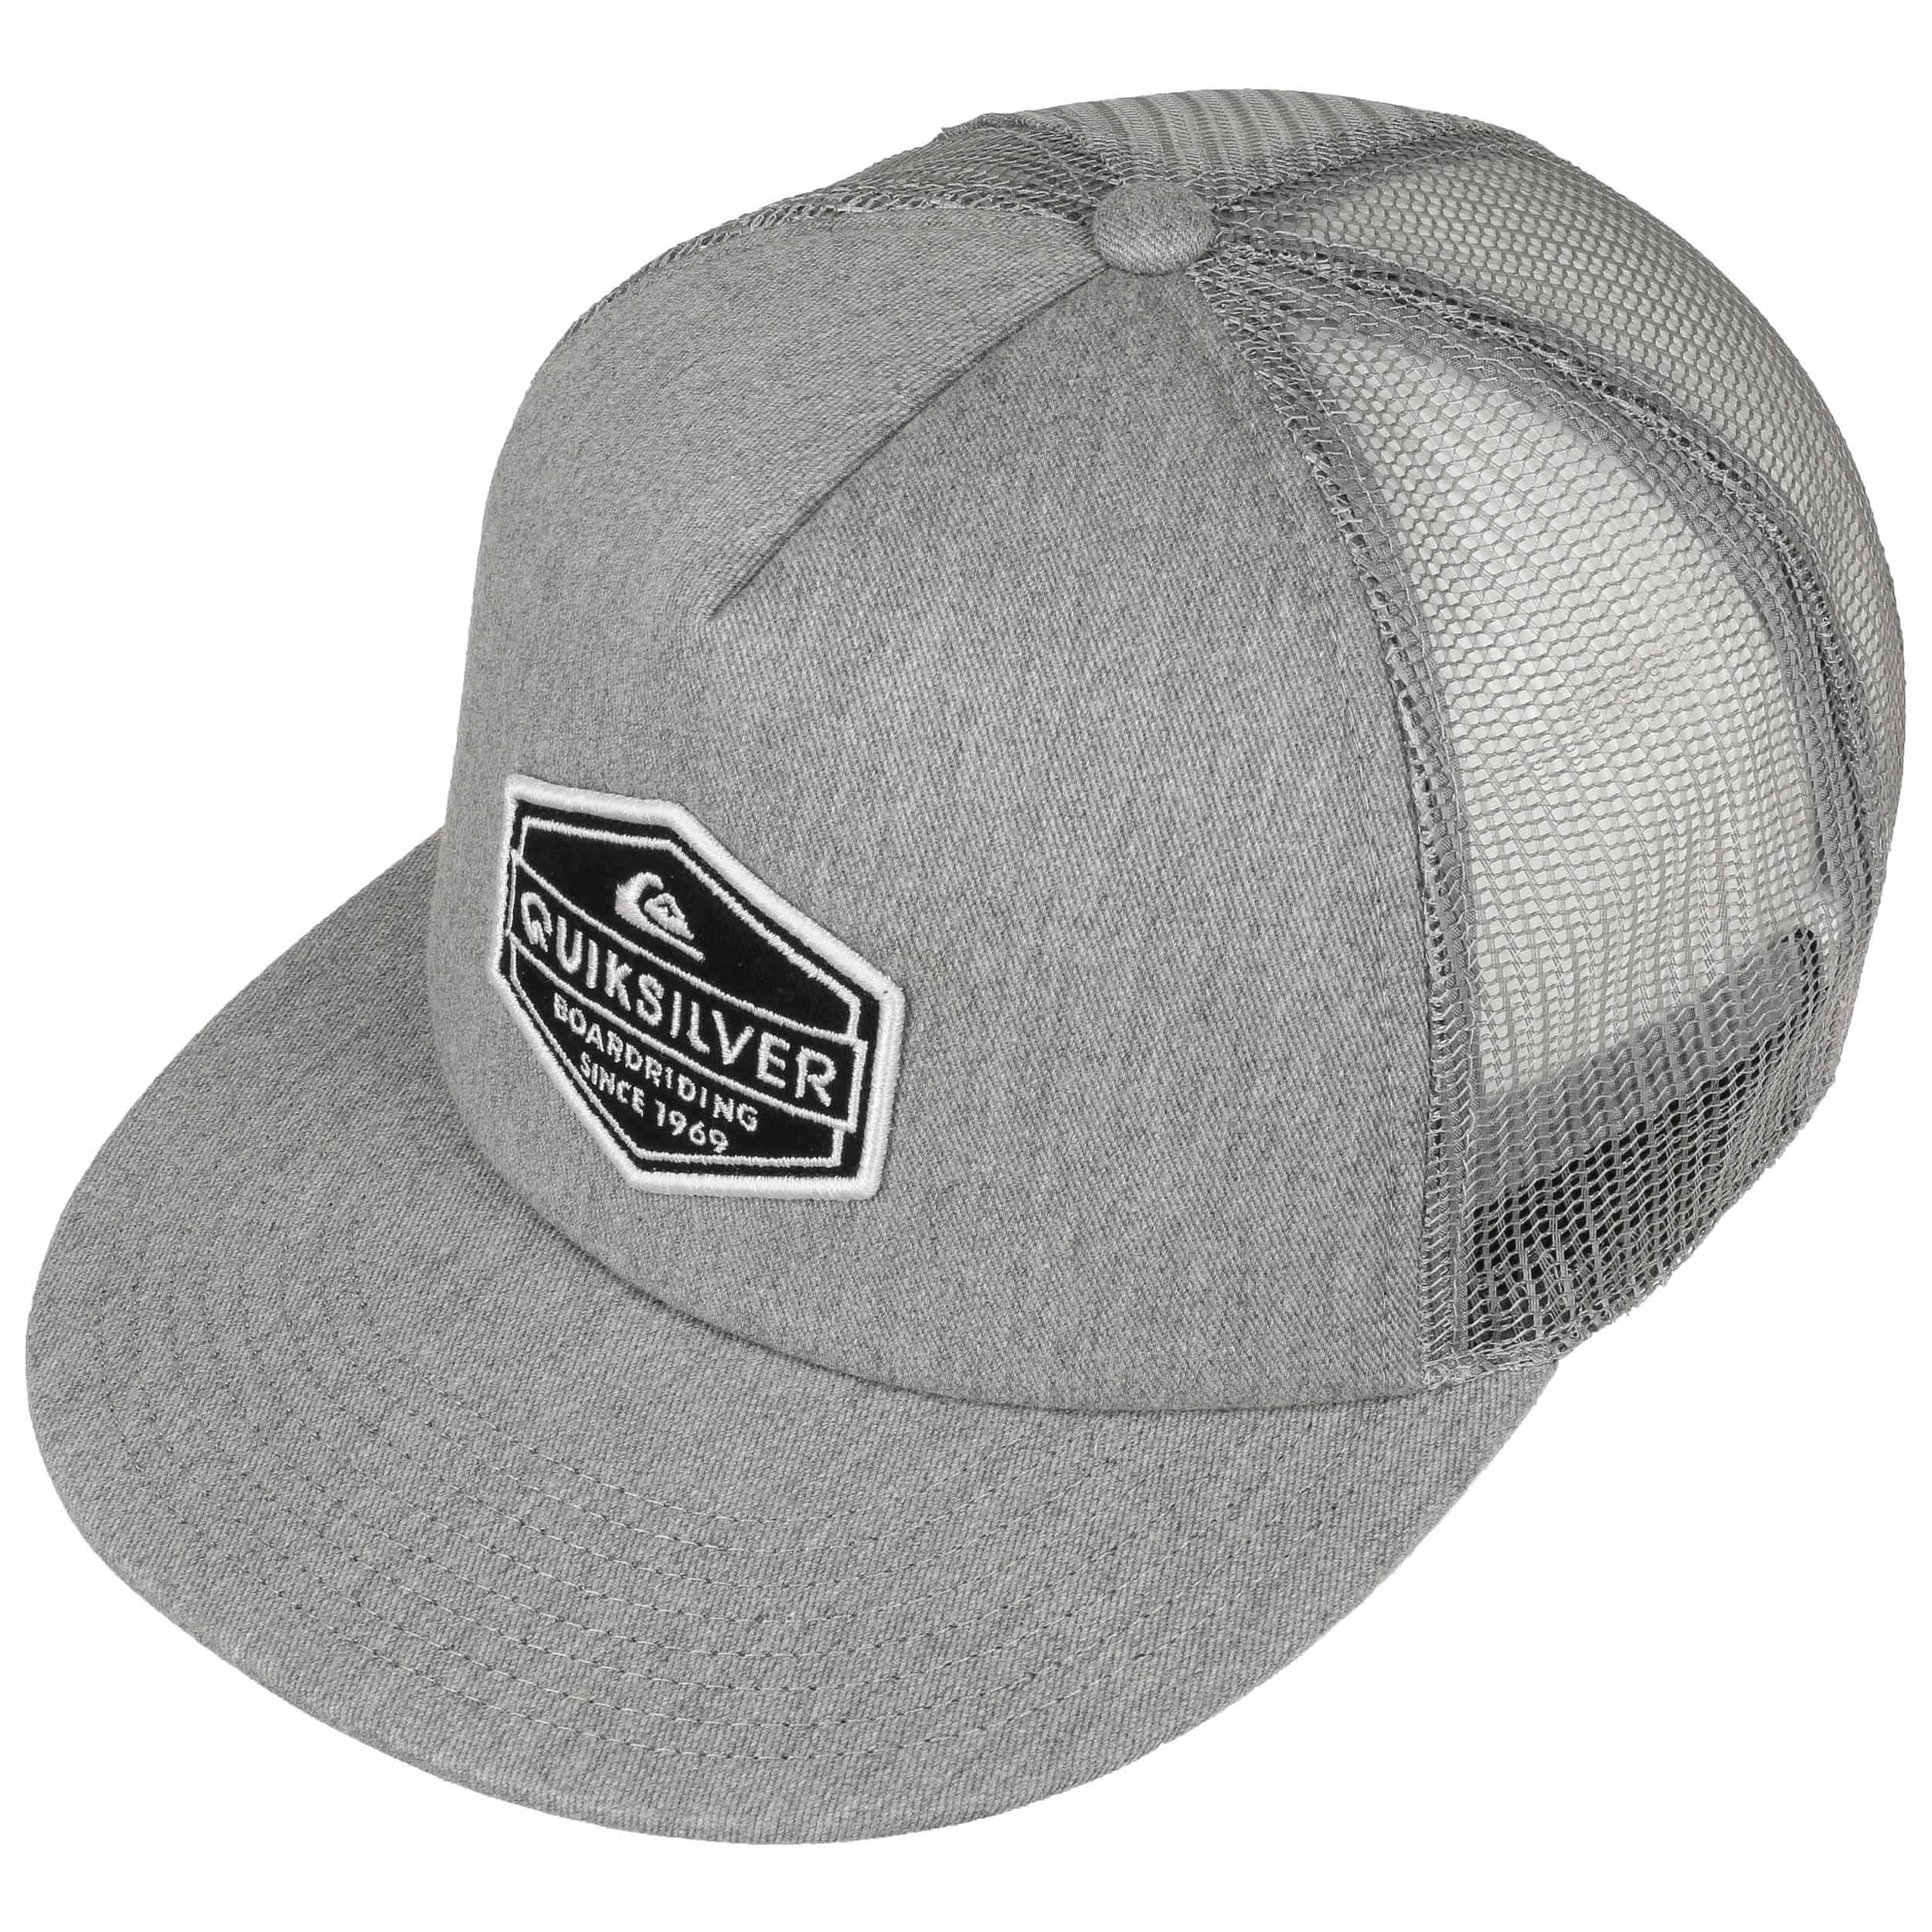 ... Marbleson Trucker Cap by Quiksilver - light grey 1 ... 45ac746c2a4